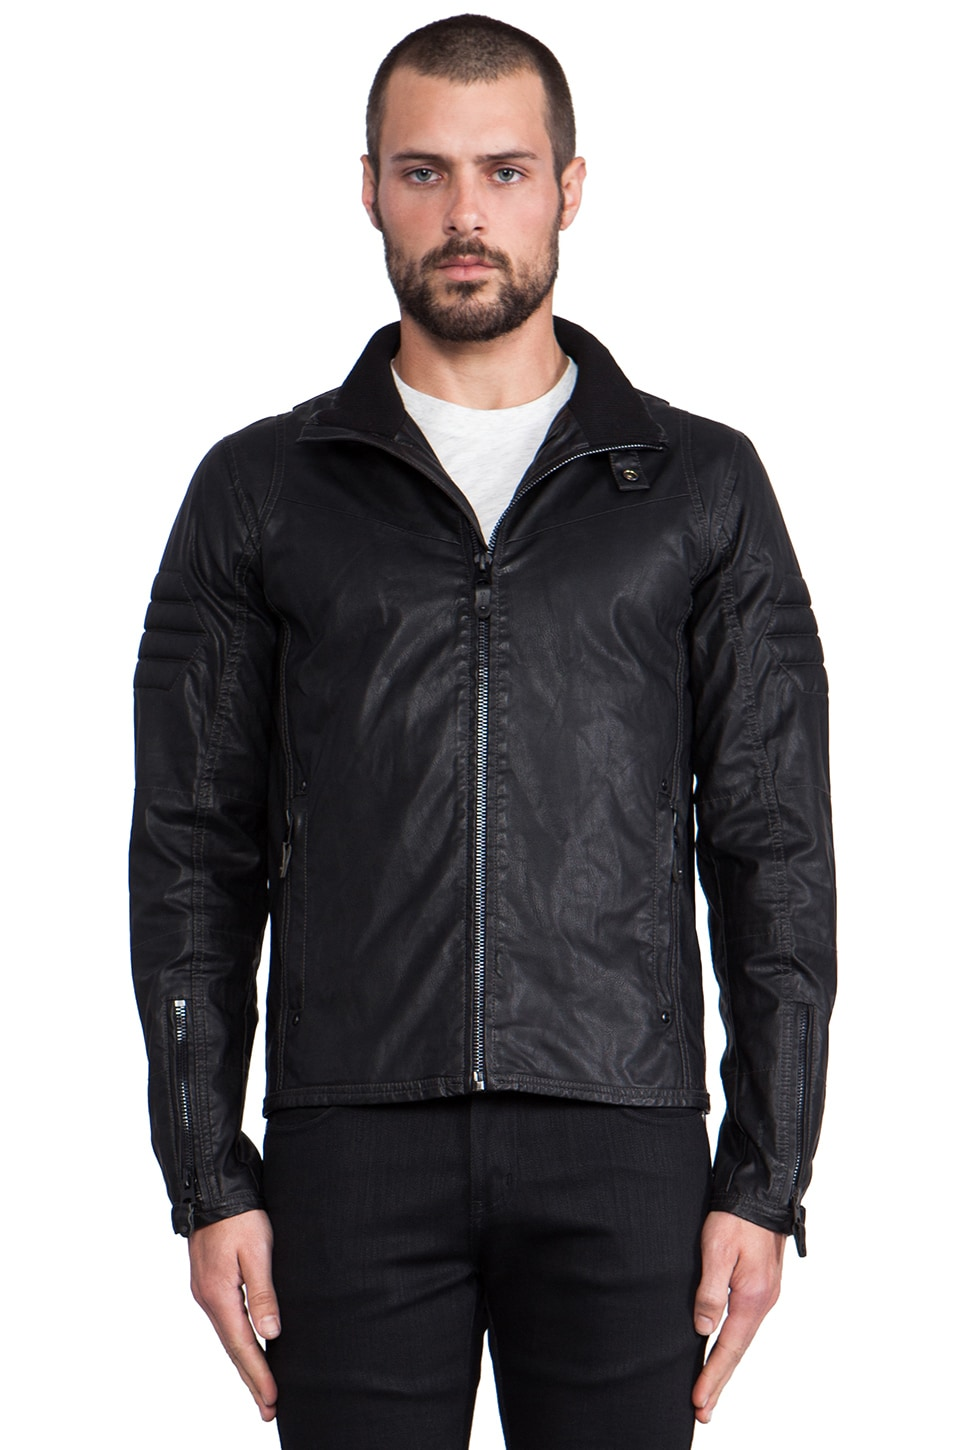 G-Star Branco Vegan Leather Jacket in Black